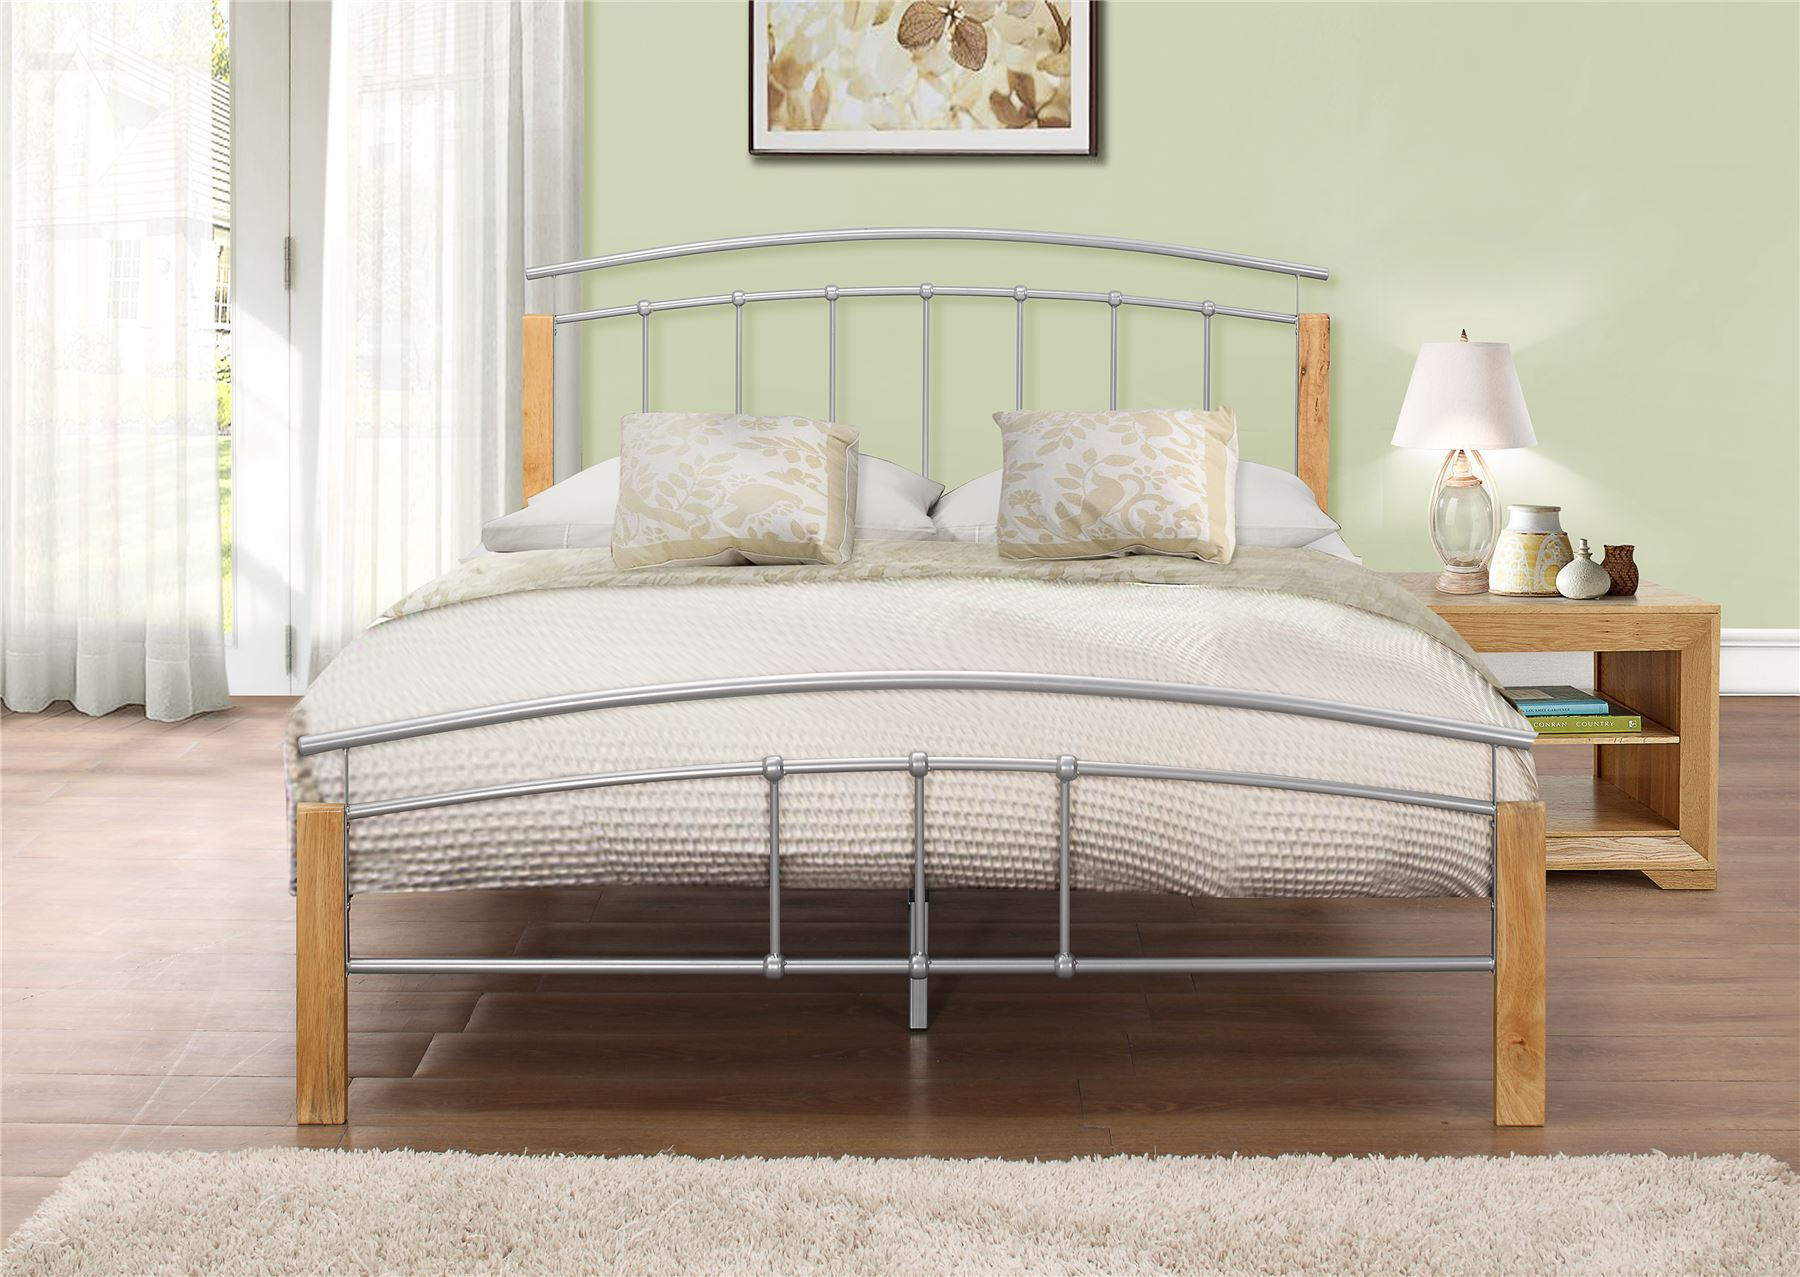 Single,Double,King Size Tetras Silver Metal Bed Frame With Oak Wooden Posts